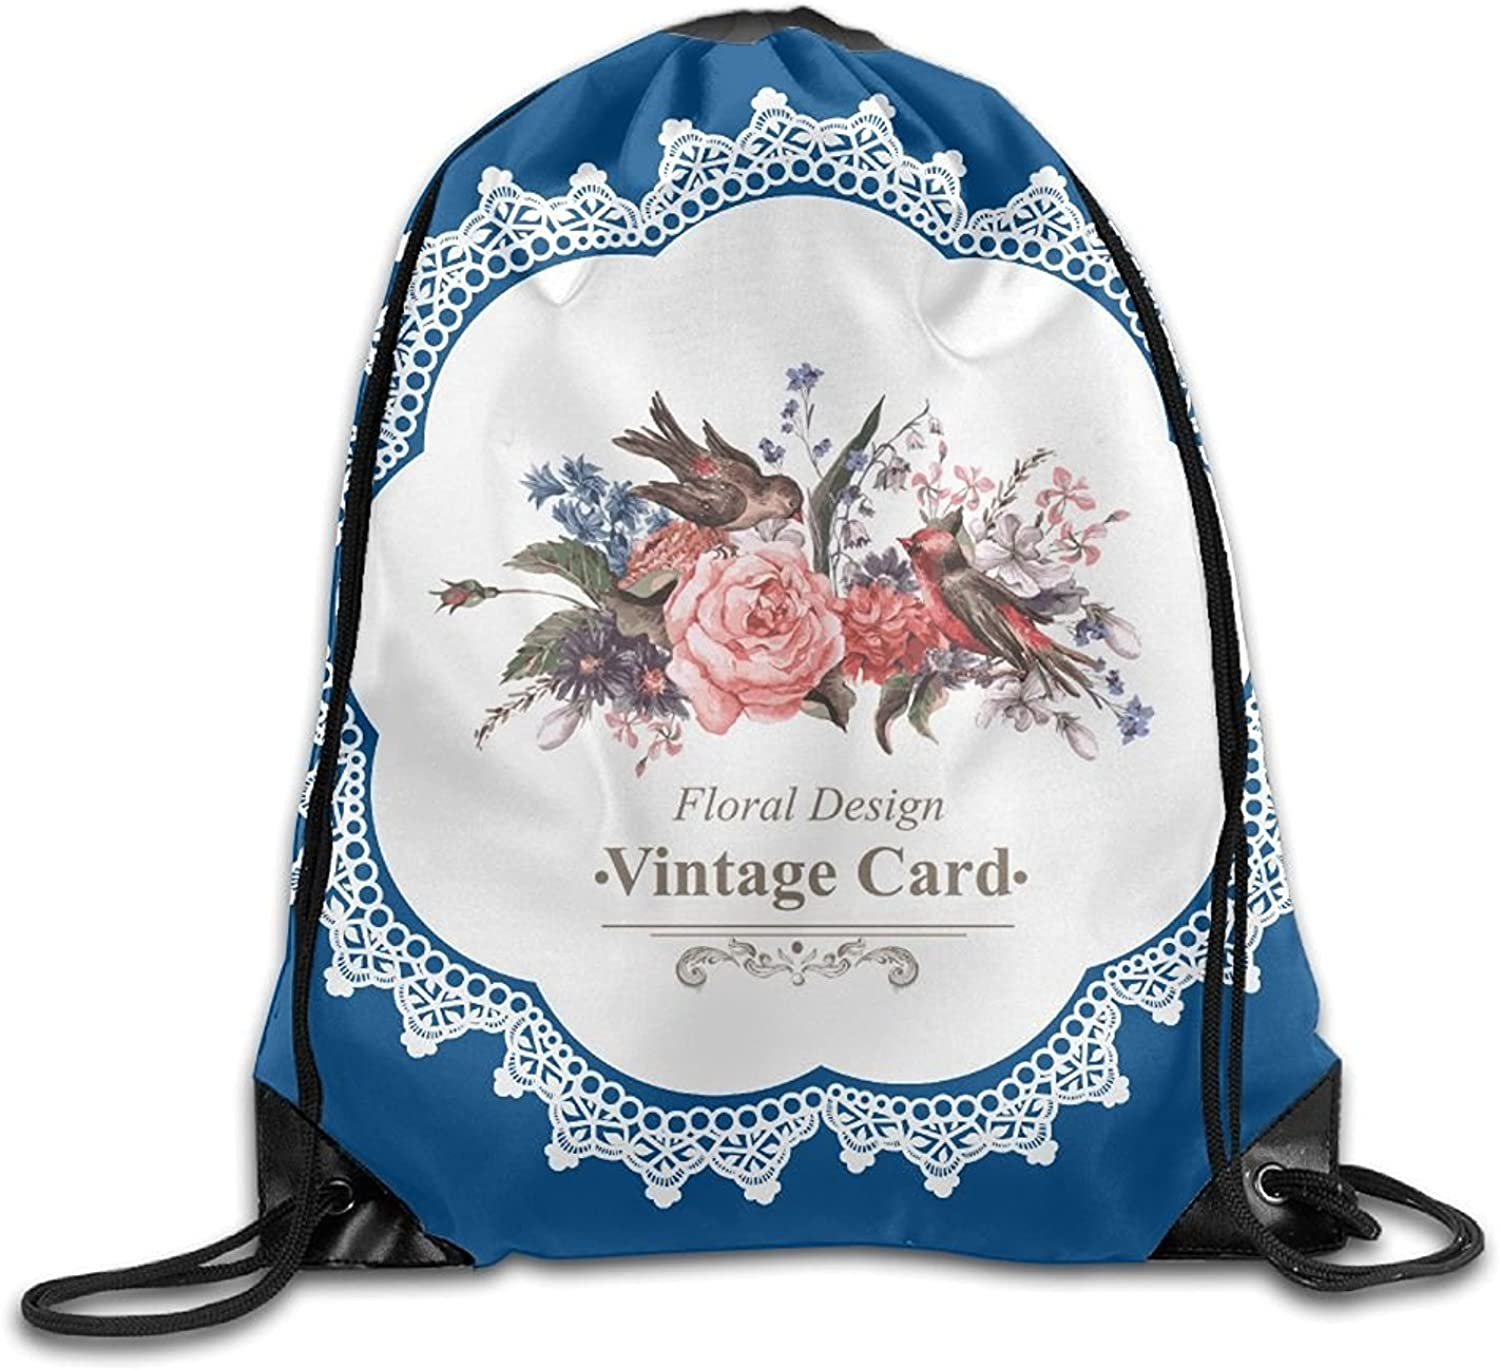 Floral Design Card Personalized Gym Drawstring Bags Travel Backpack Tote School Rucksack